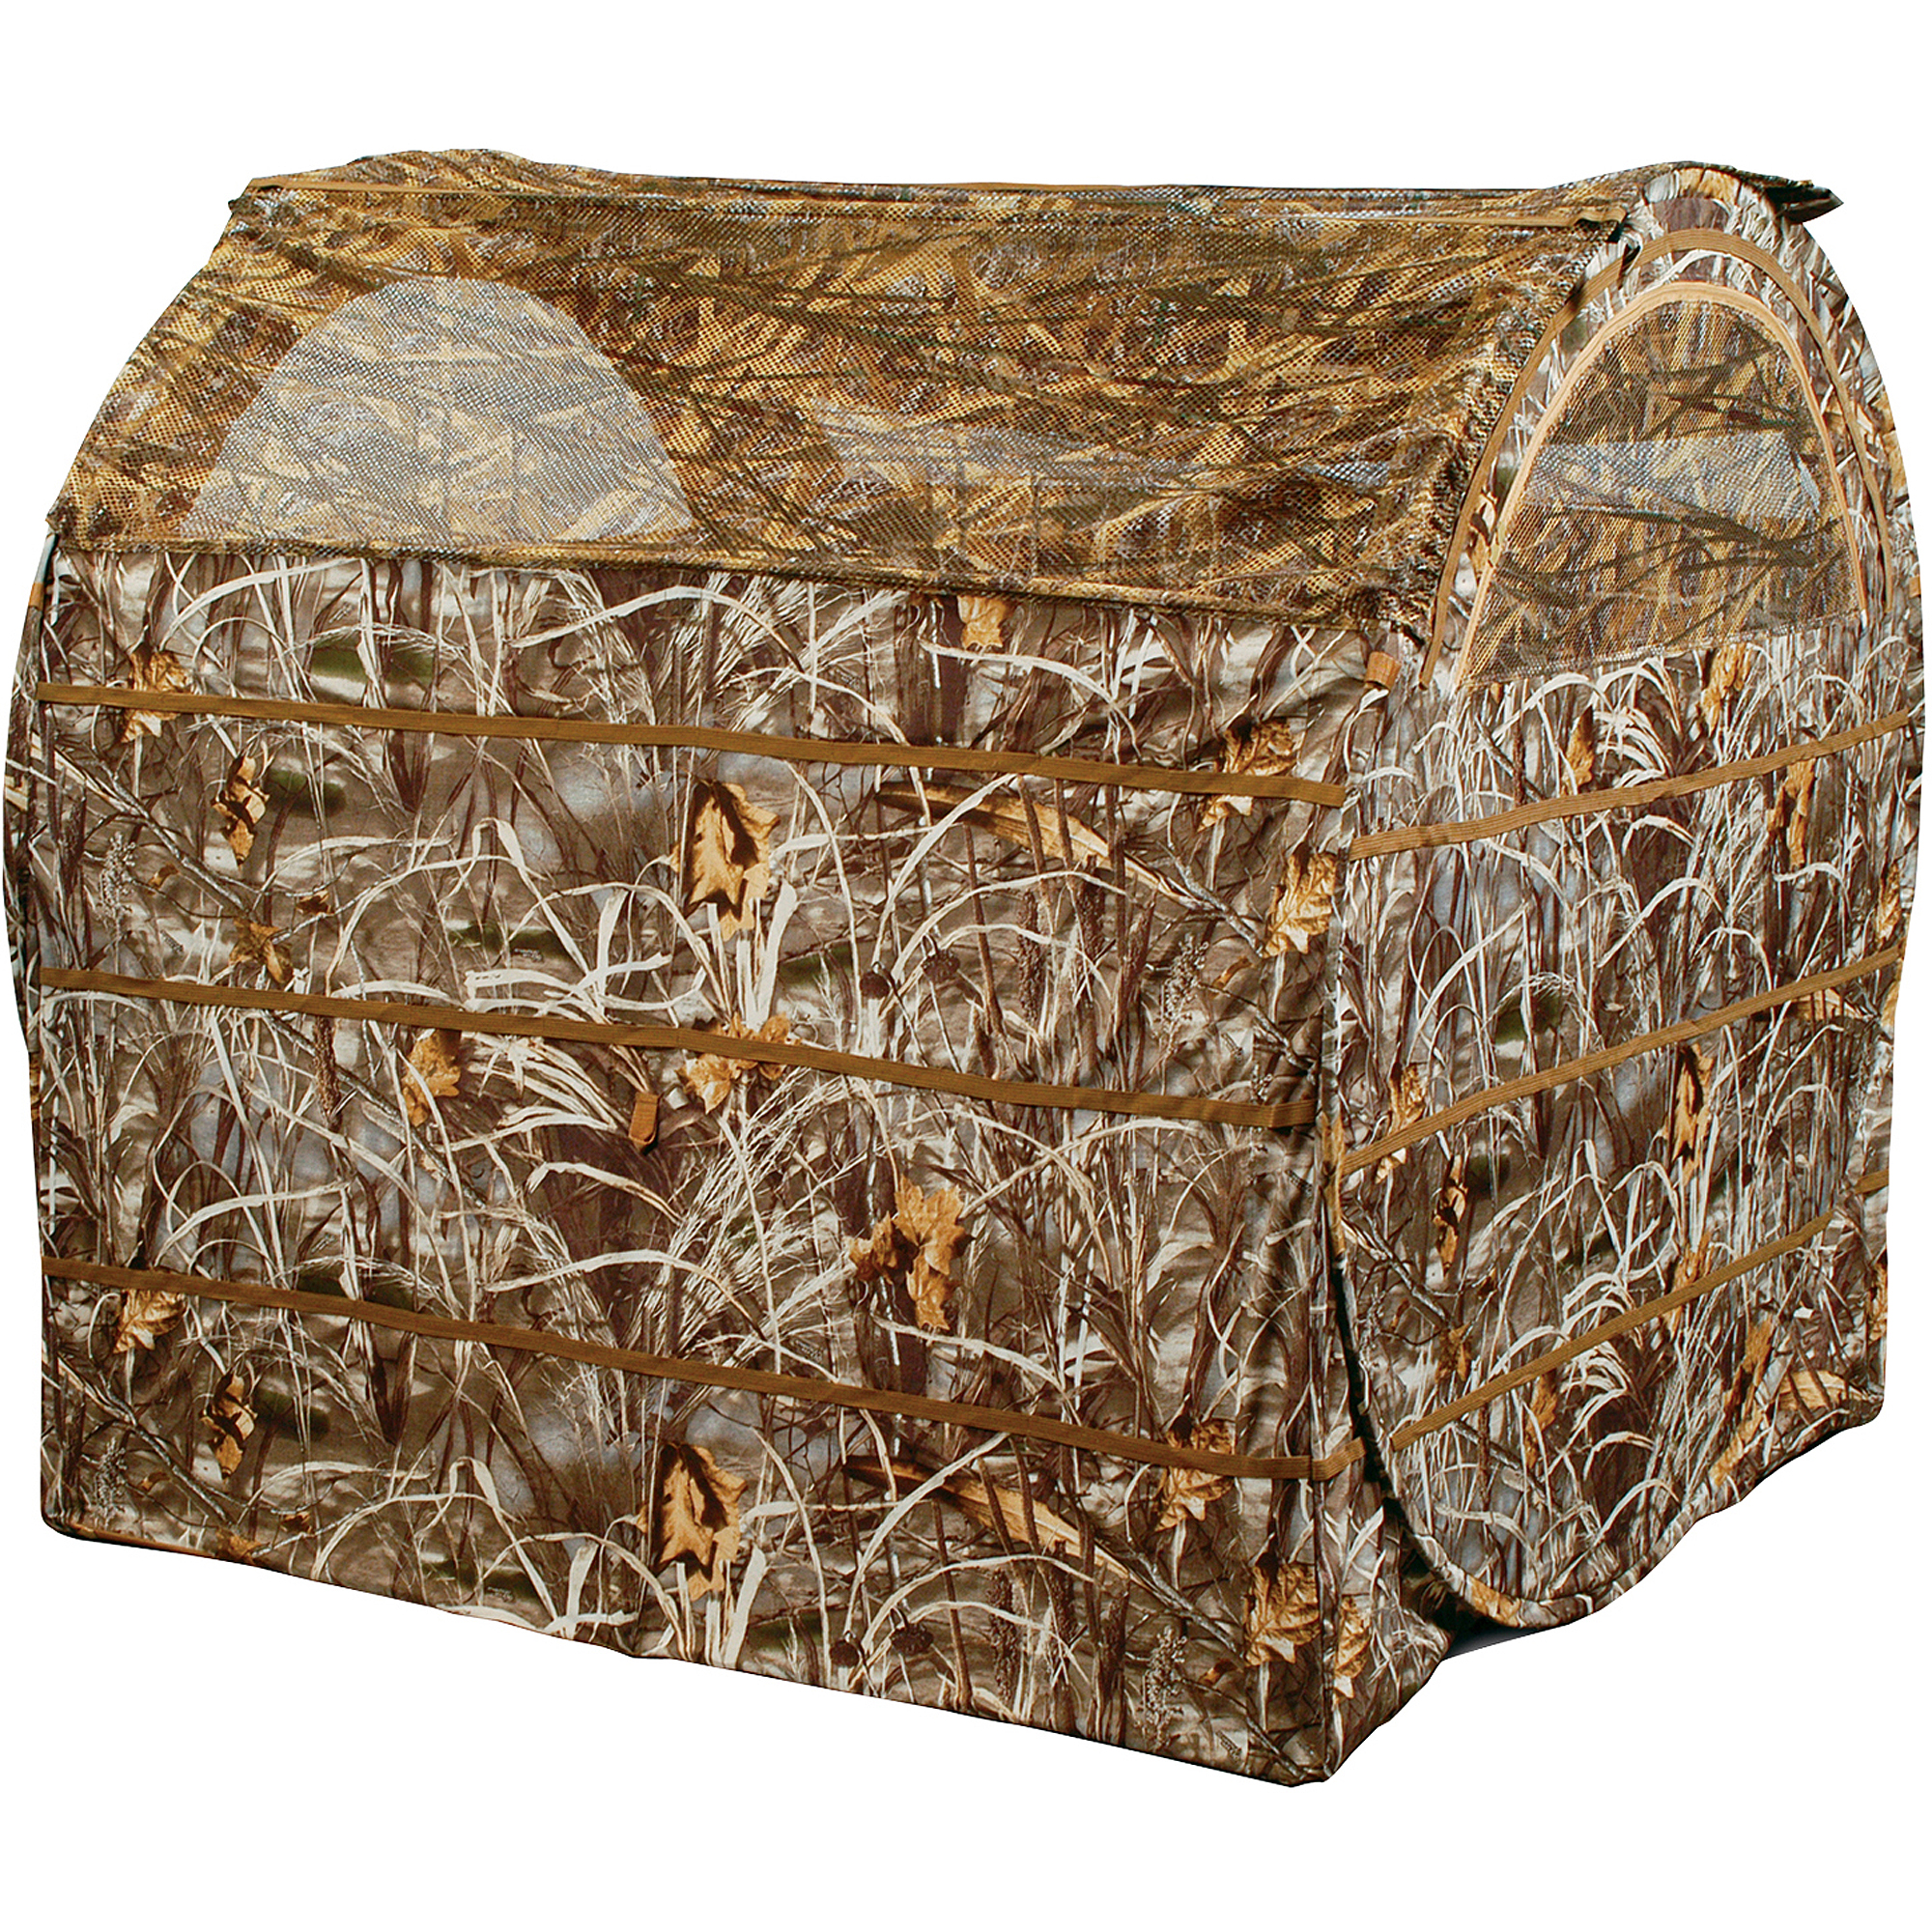 blinds barrot best two chair discontinued with bowhunters ameri go hunting blind person in pulse big